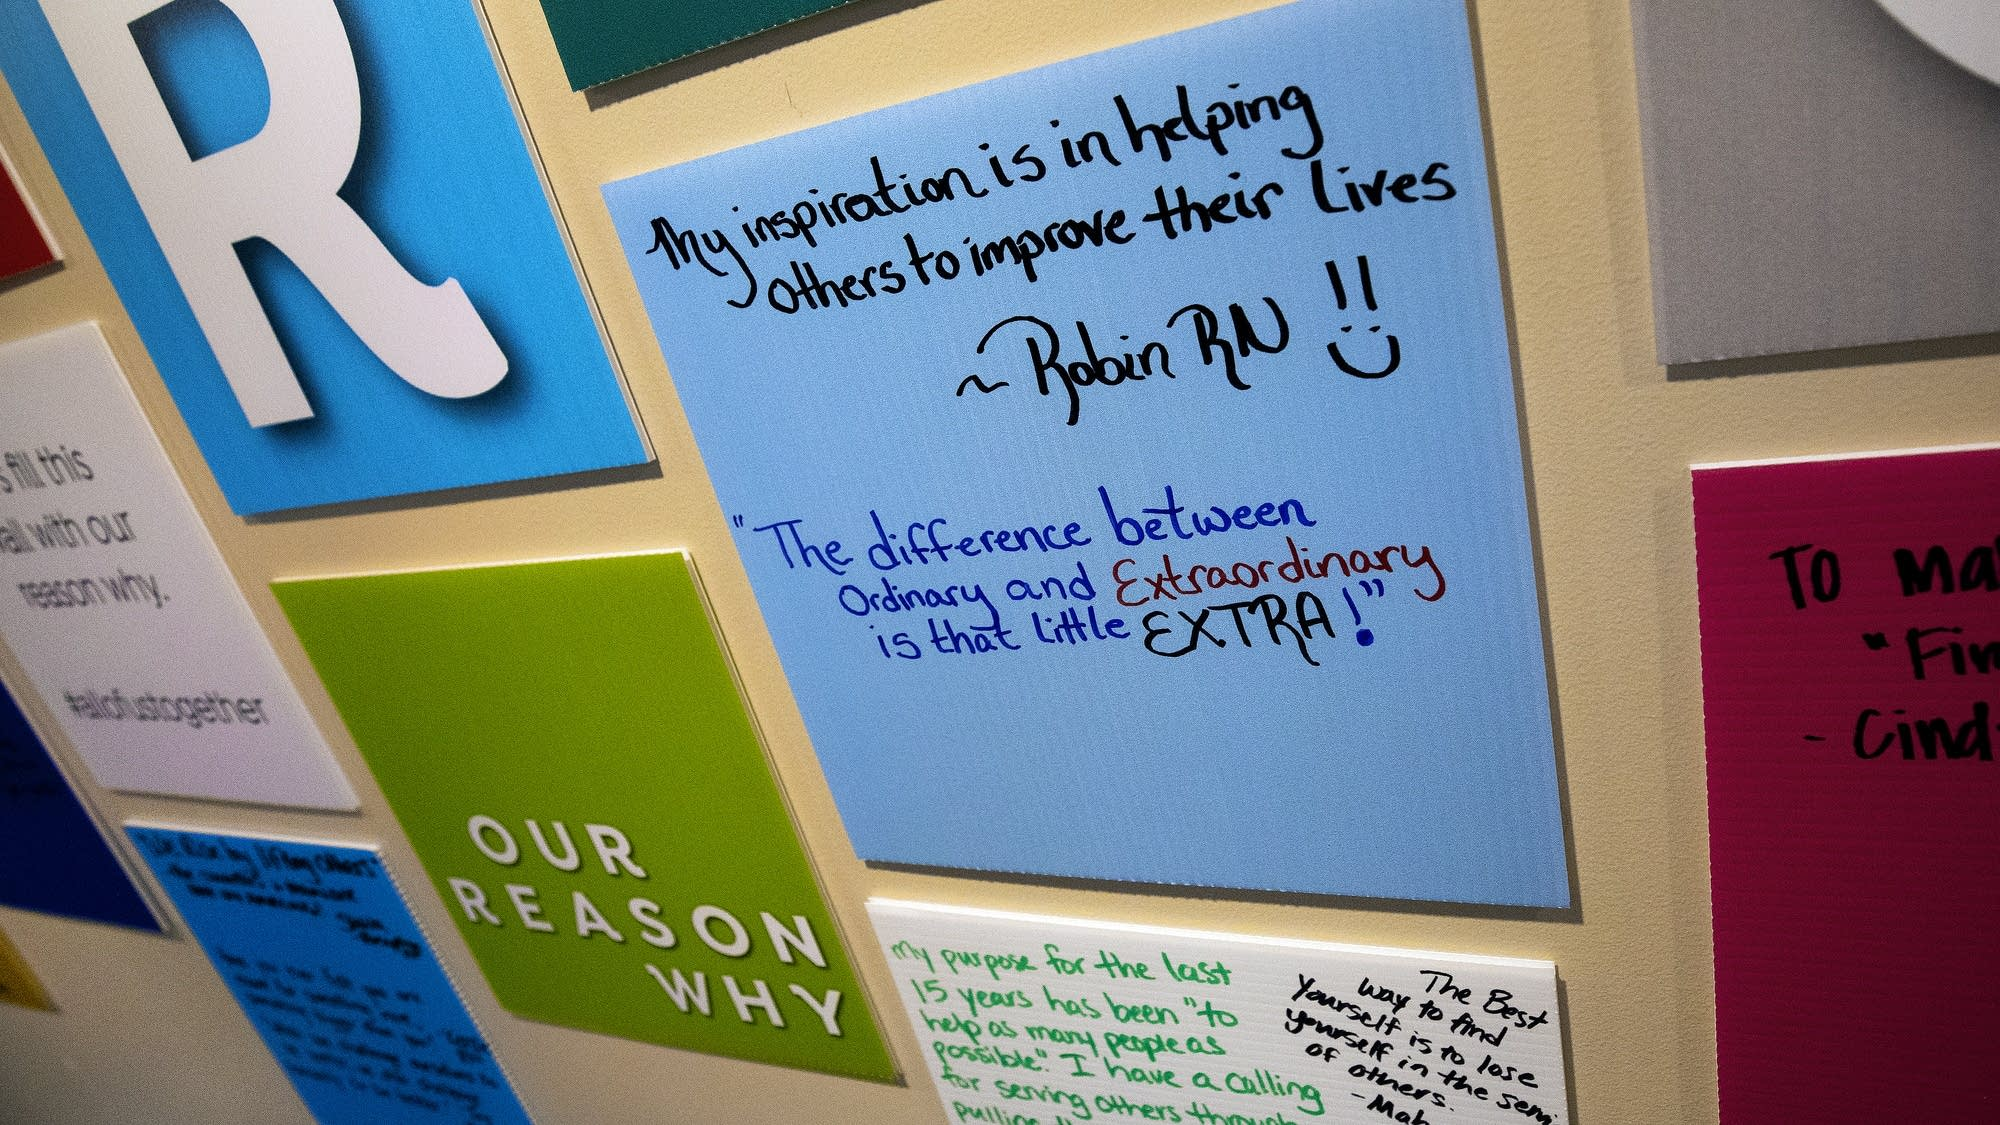 Patients are encouraged to share their thoughts or an inspirational quote.